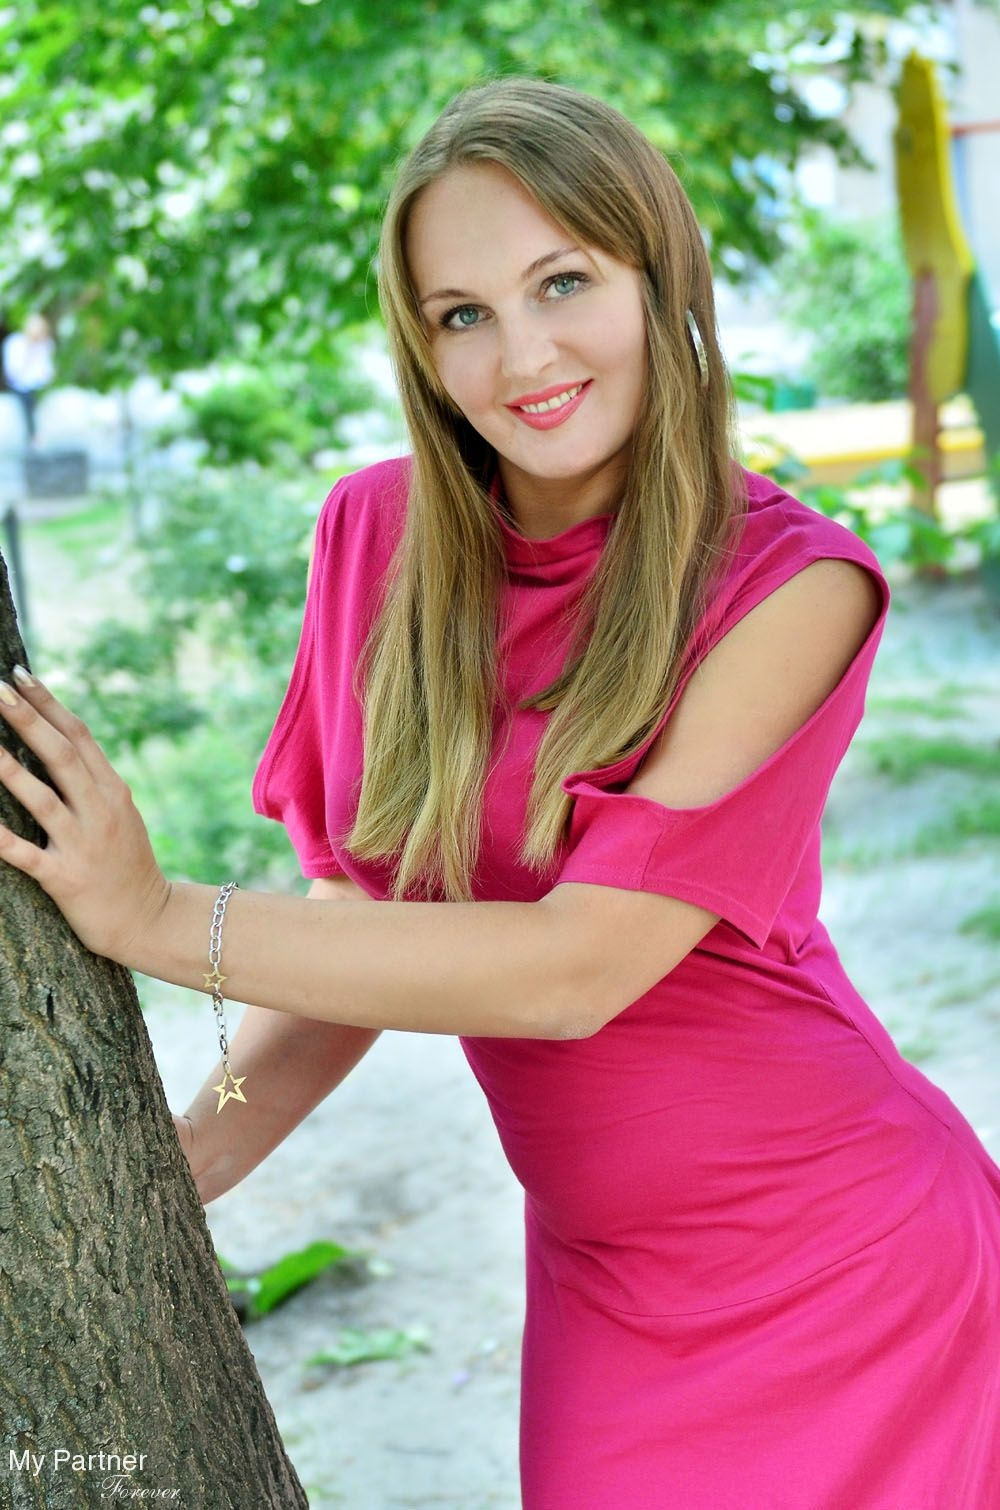 Most trusted dating sites for meeting russian women